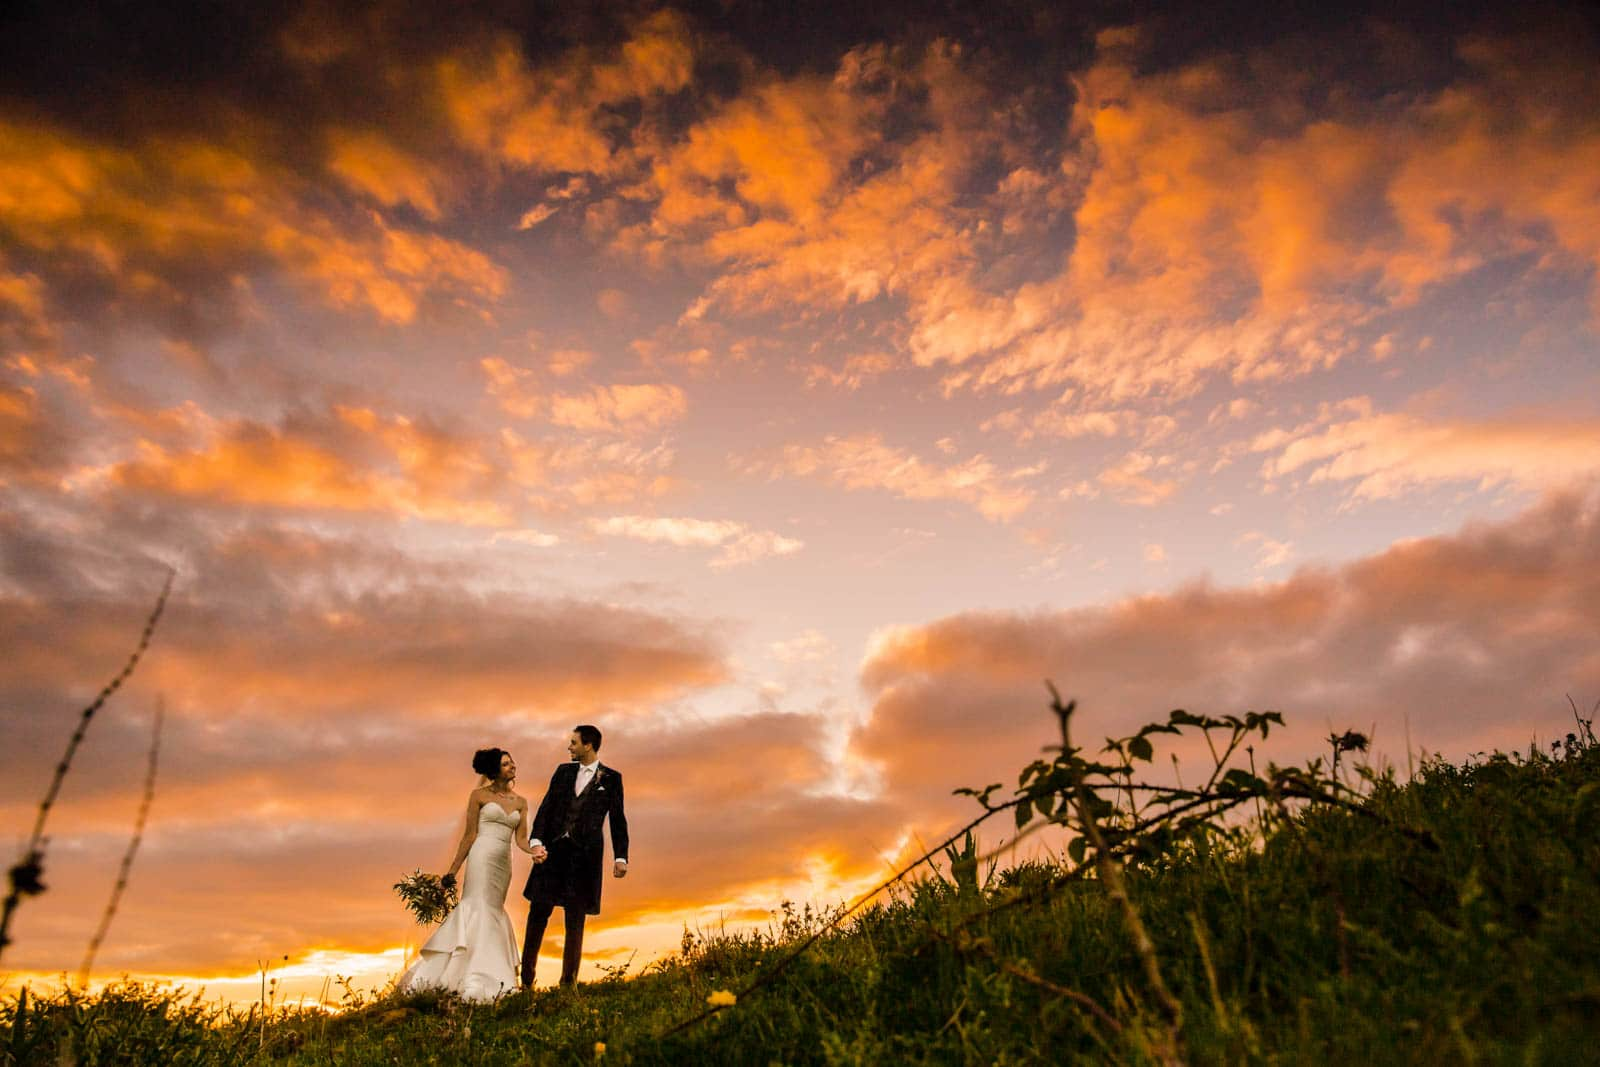 Beautiful colourful sunset sky and the bride and groom walking